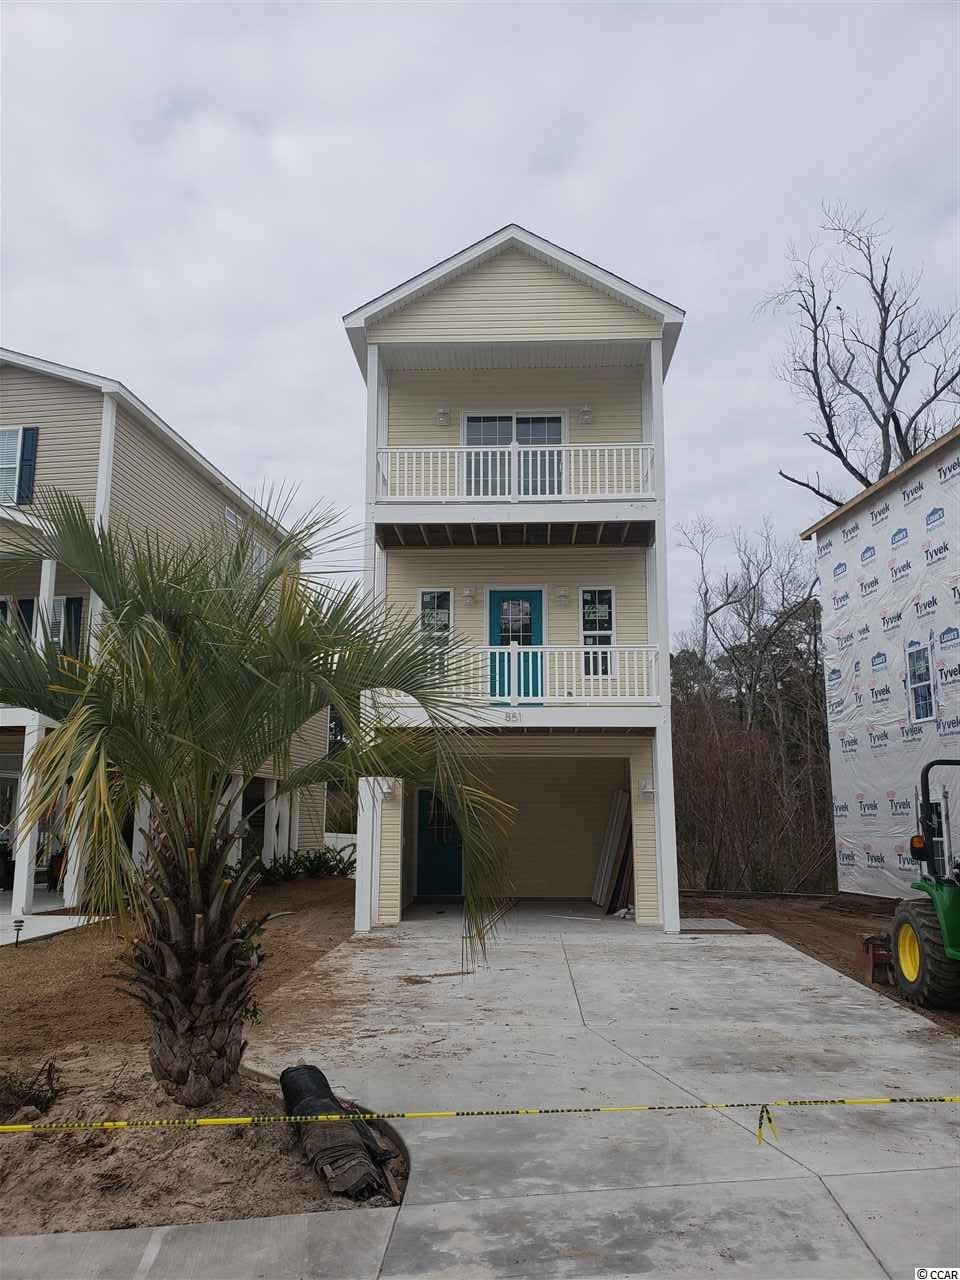 3BR / 2BA / 1328HSF new construction home. great floor plan with master bedroom and office / guest bedroom on top floor - all living space on mid floor and guest bedroom suite on ground floor. Kitchen features custom cabinets, granite countertops, and stainless appliances package. Turn key completion with concrete driveway, fully landscaped and irrigated yard. Easy golf cart distance to beach, shopping restaurants and that NMB has to offer.